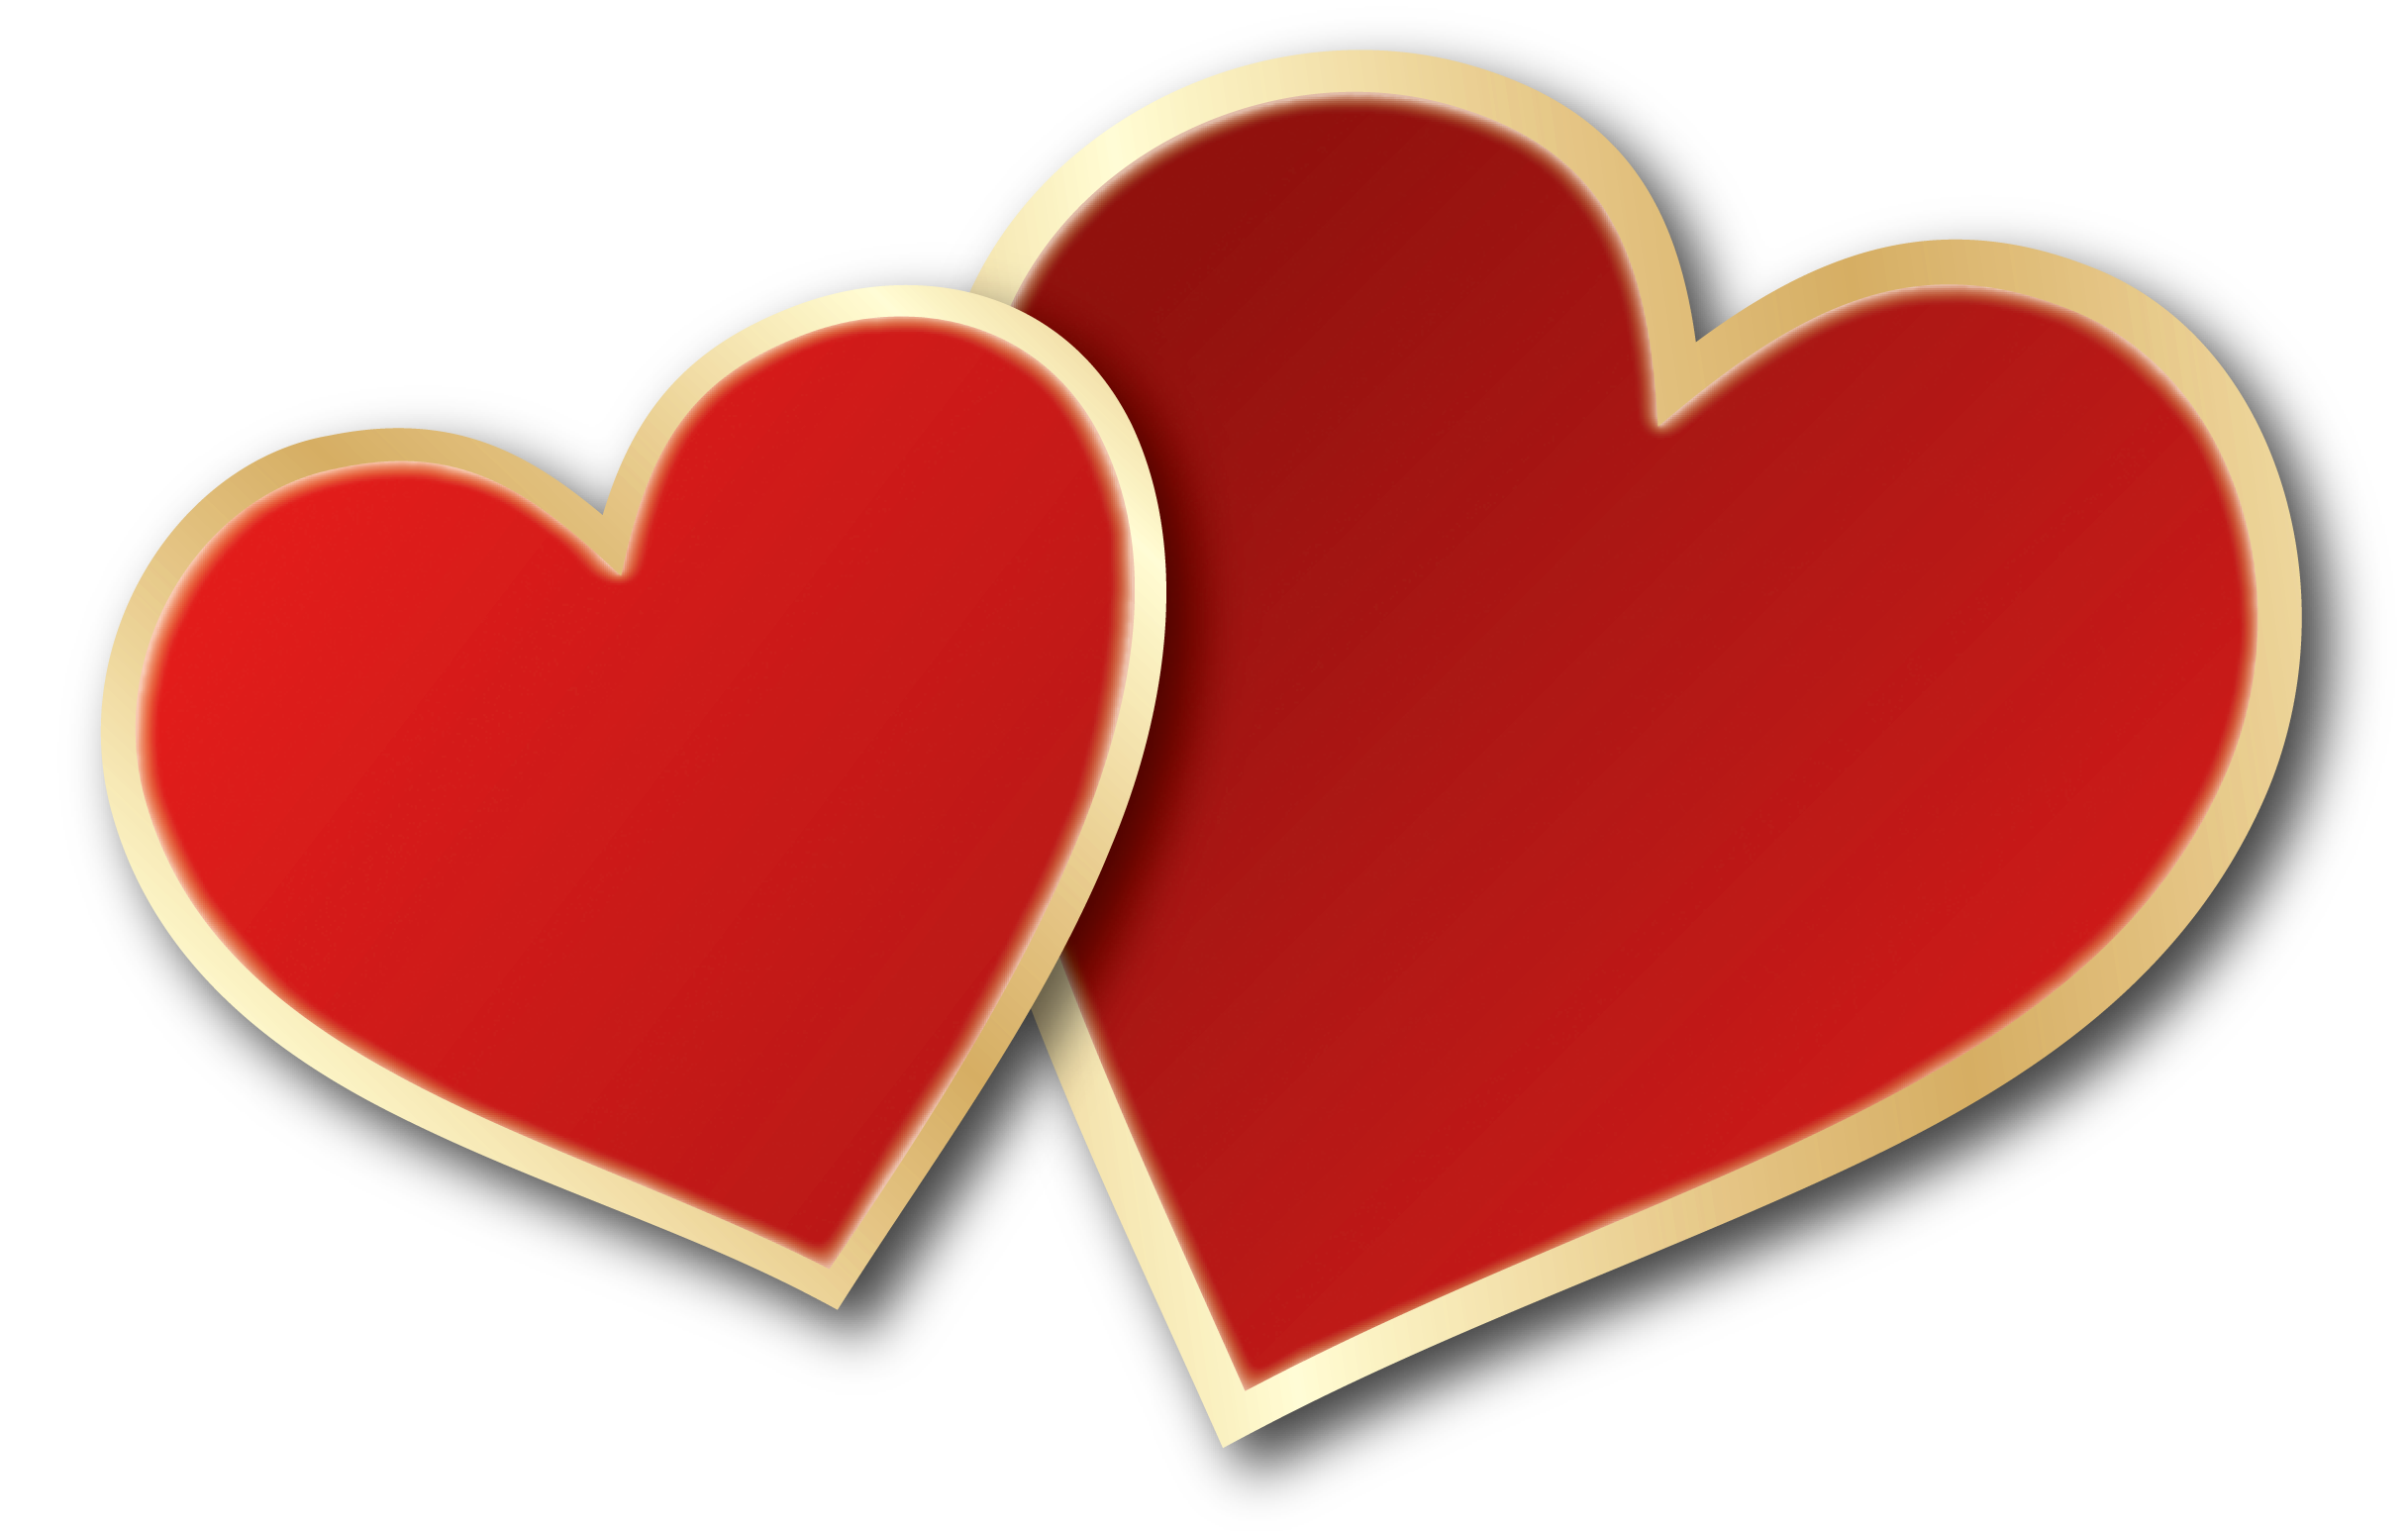 Heart png transparent background. Valentines day image with